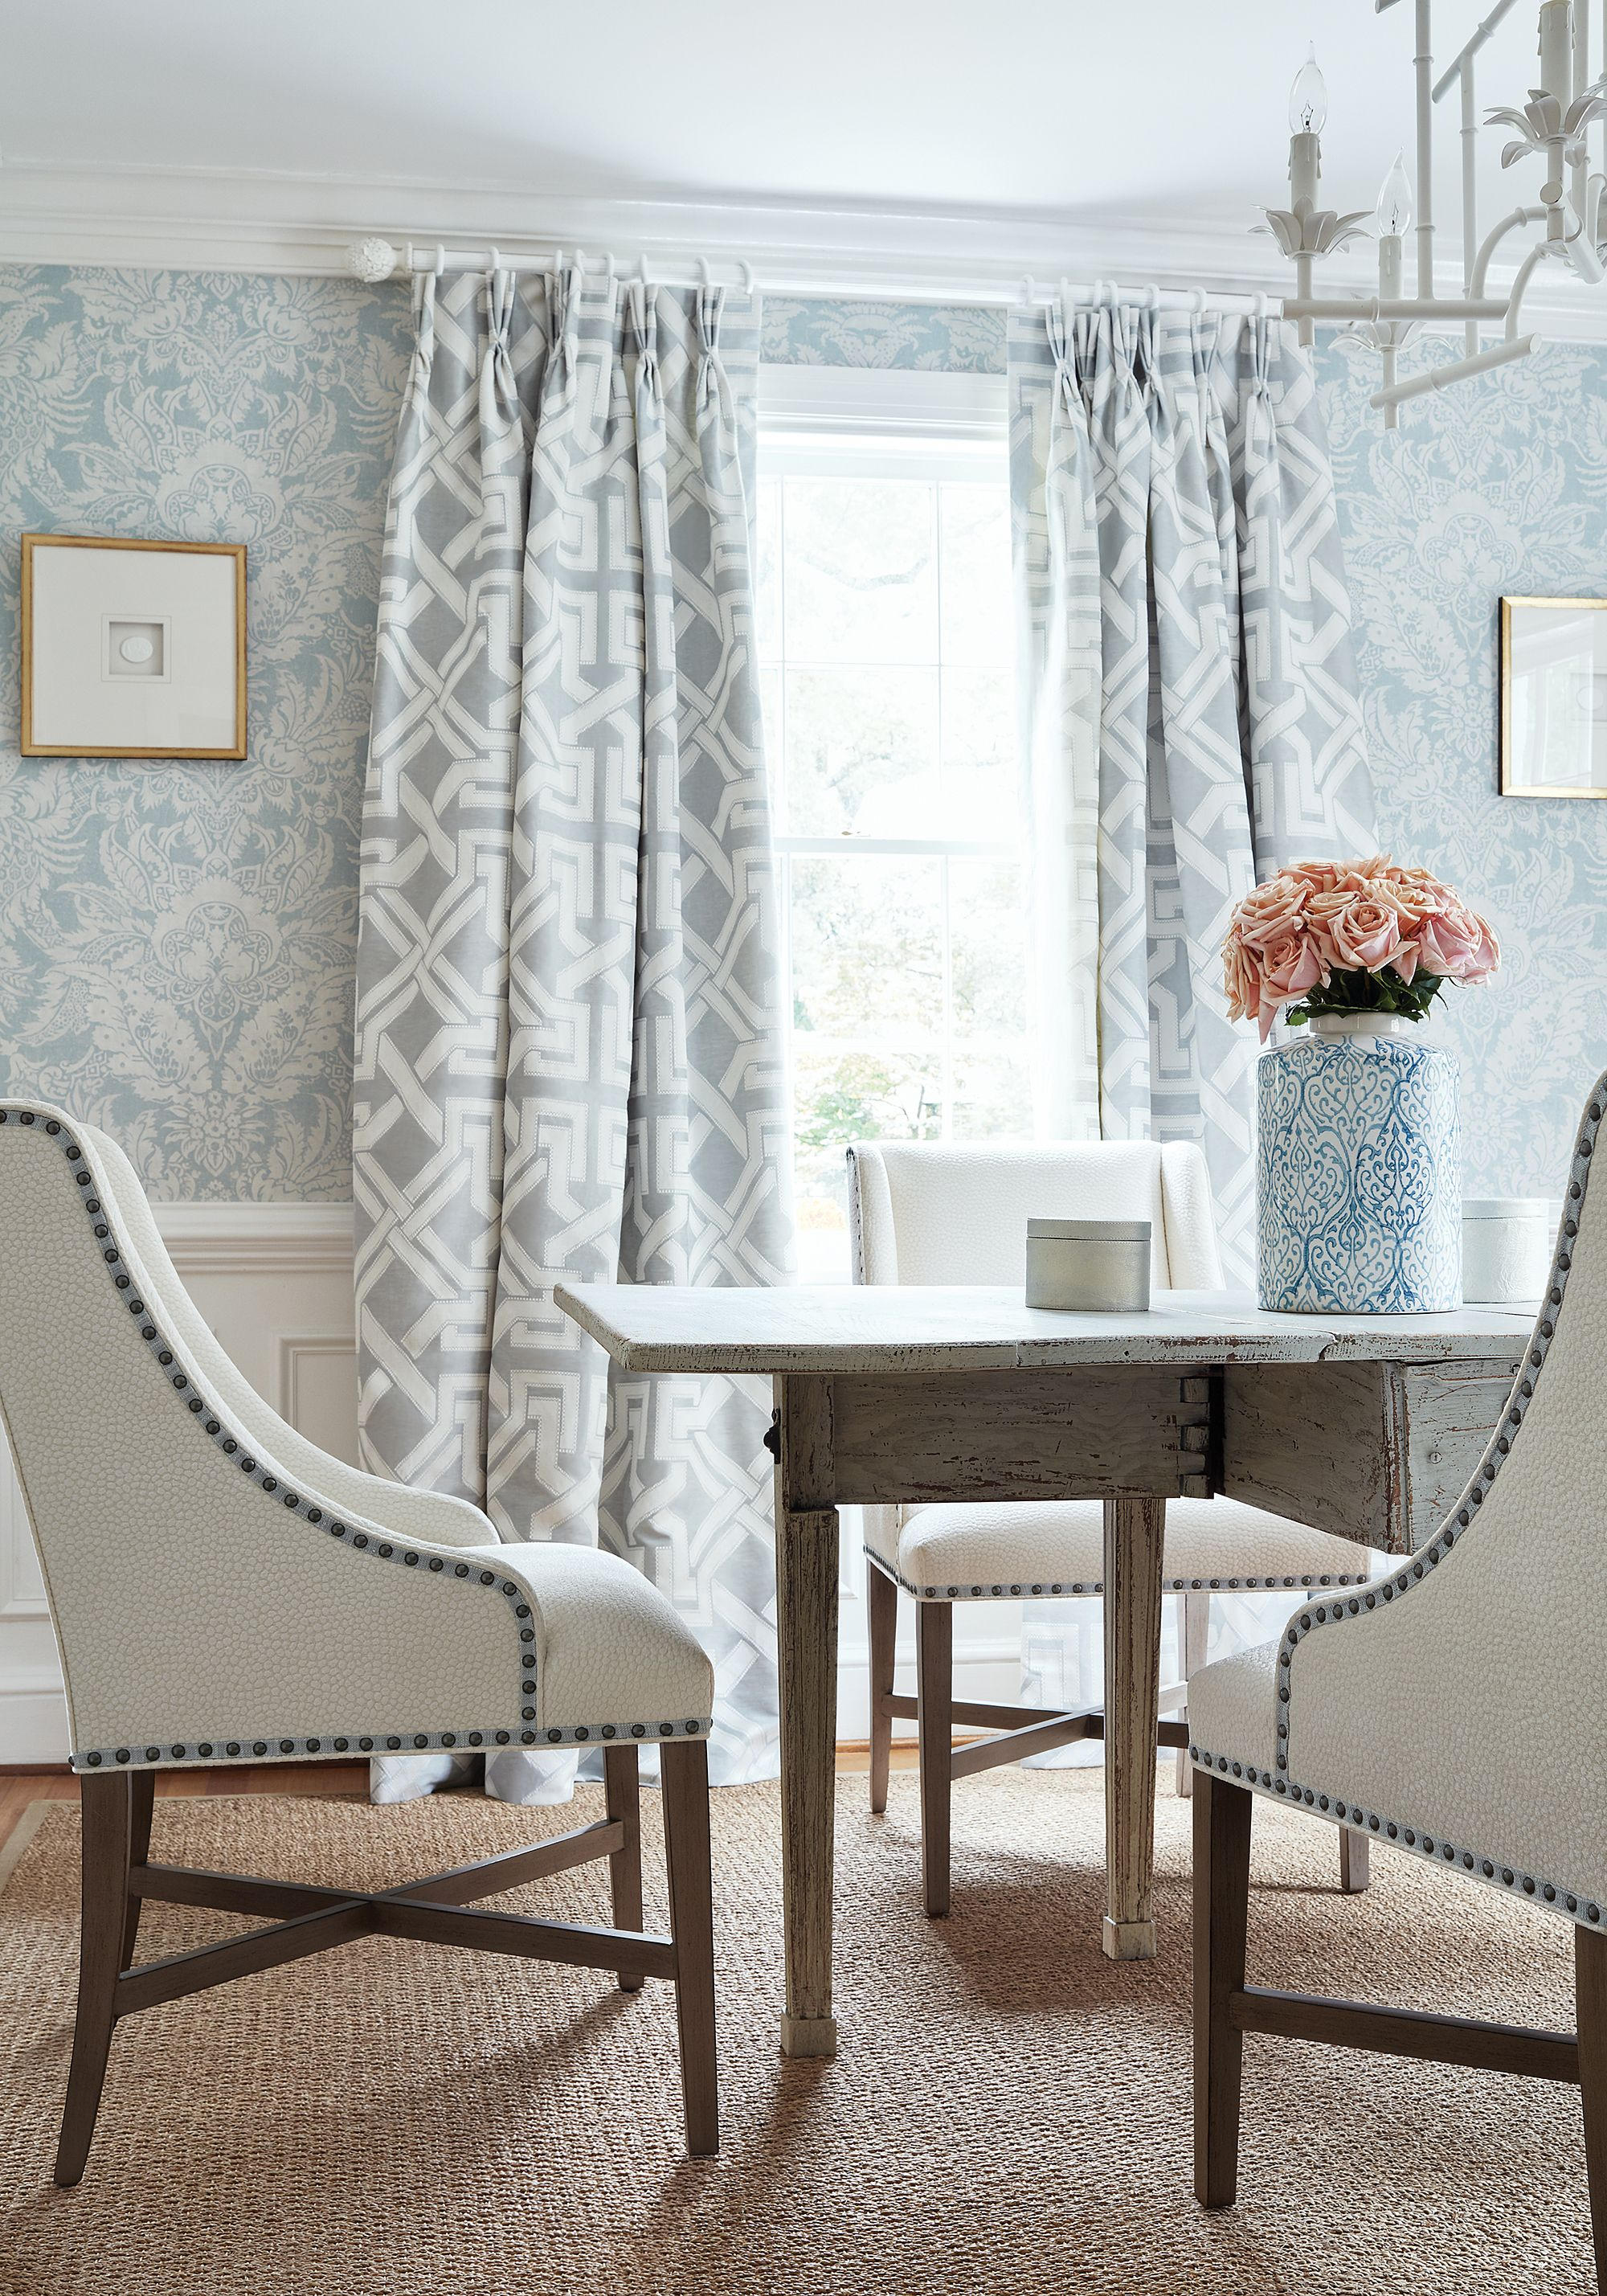 Hayden Dining Chairs In Kali Woven Fabric In Snow White From Thibaut Fine Furniture Damask Decor Interior Design Thibaut Wallpaper